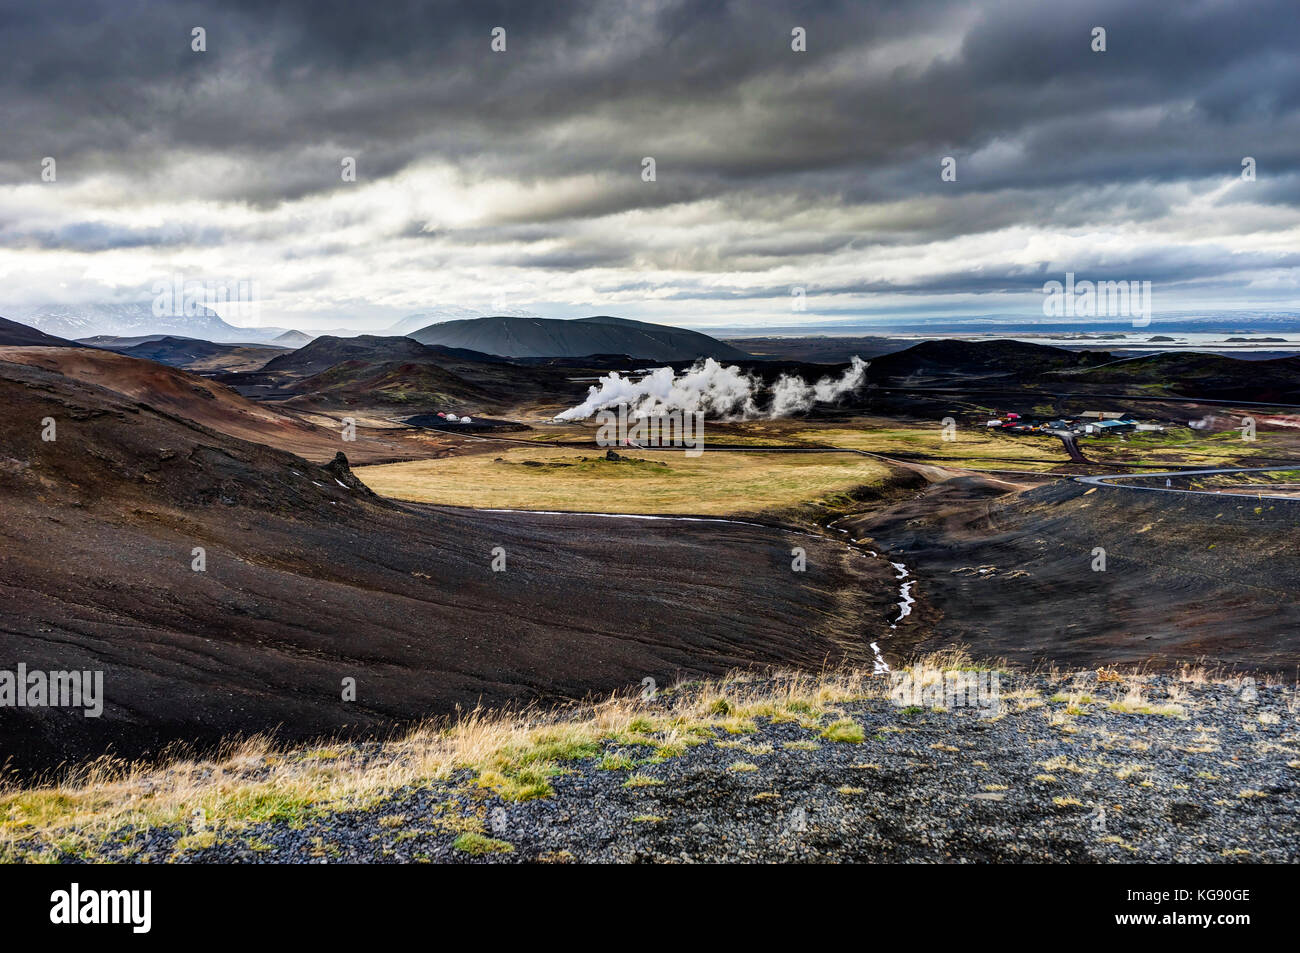 Hverir geothermal area near Myvatn Iceland with clouds and sky a - Stock Image